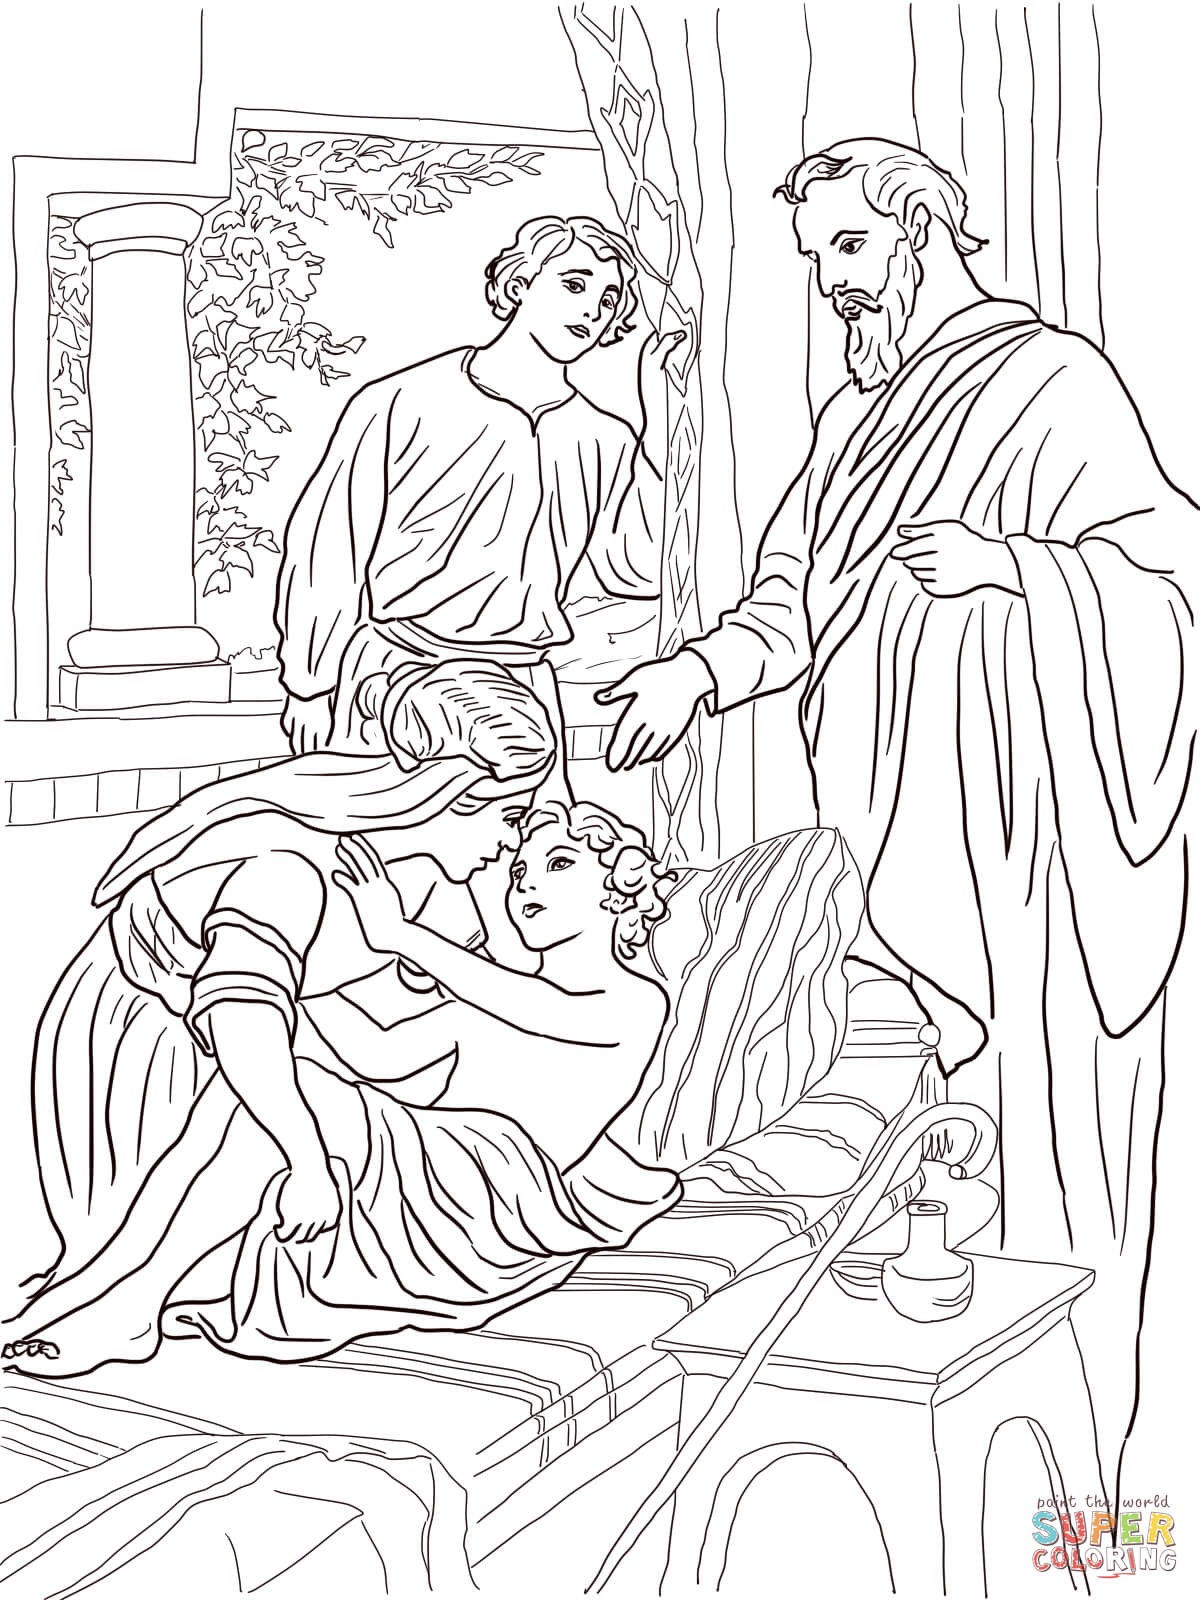 Elisha Bible Story Coloring Pages Coloring Pages